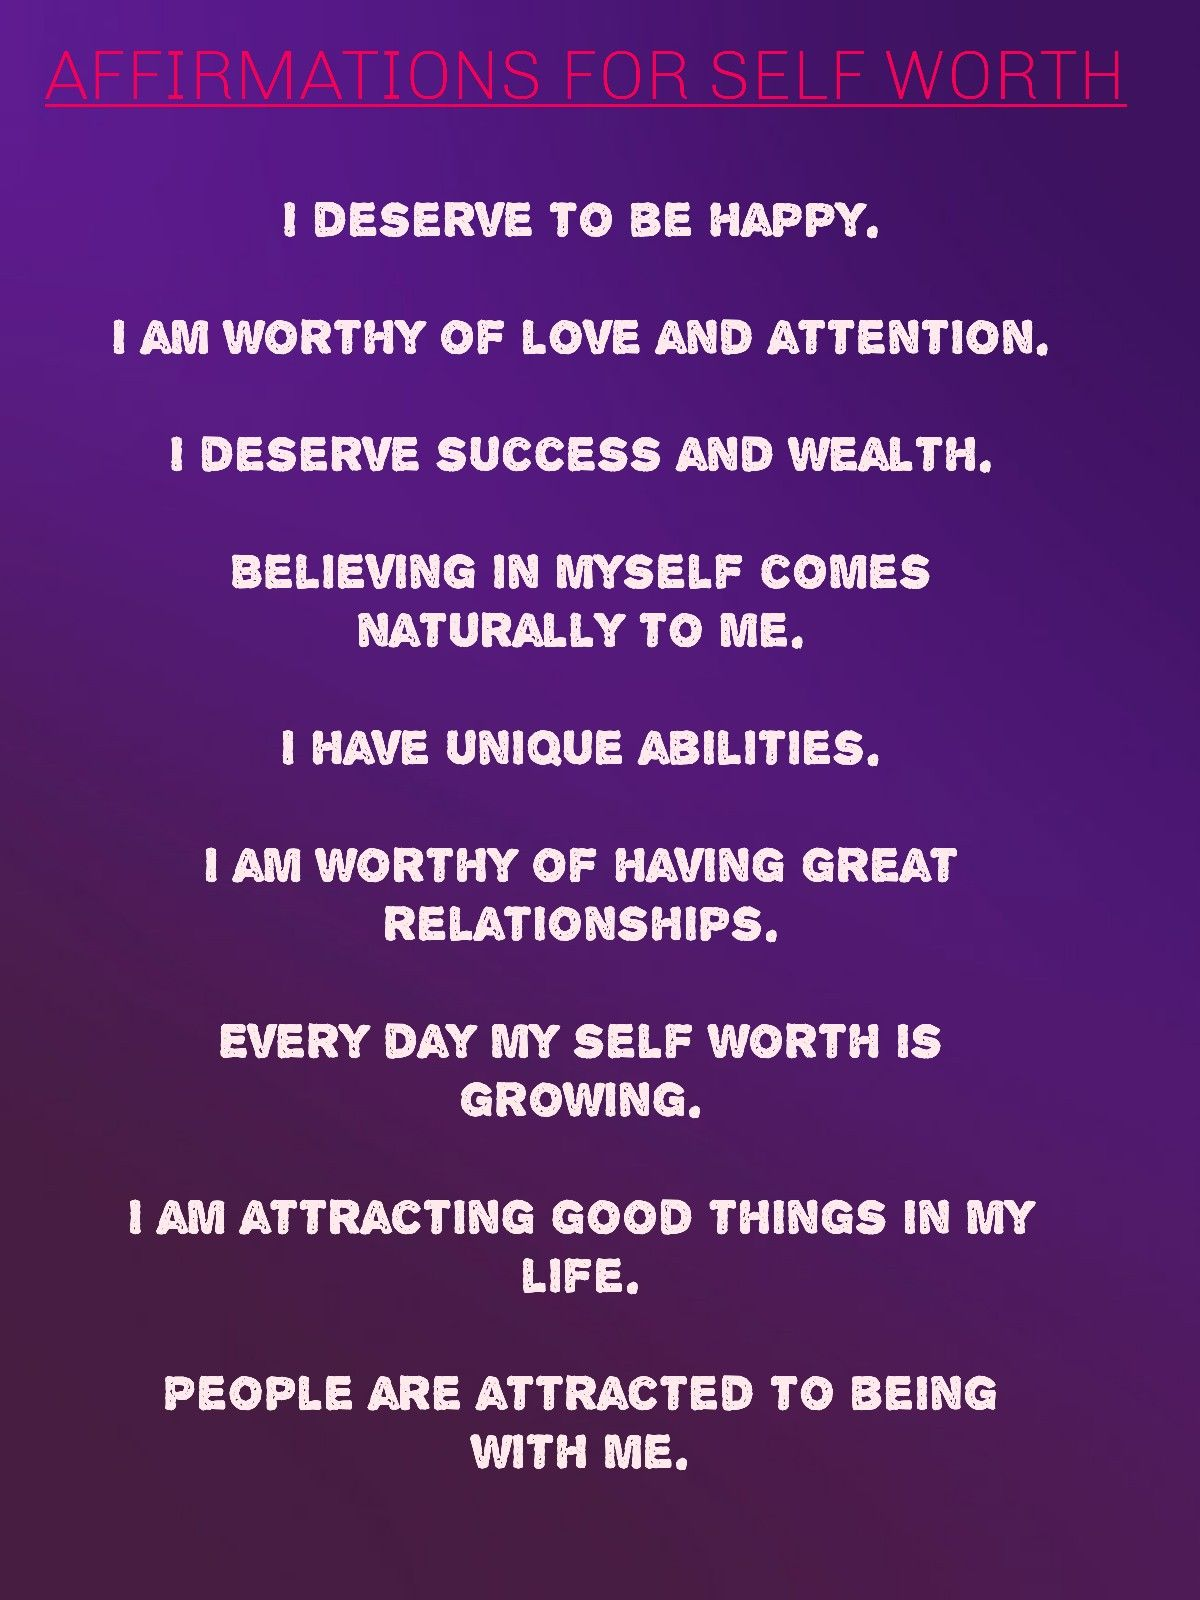 Affirmations For Self Worth In